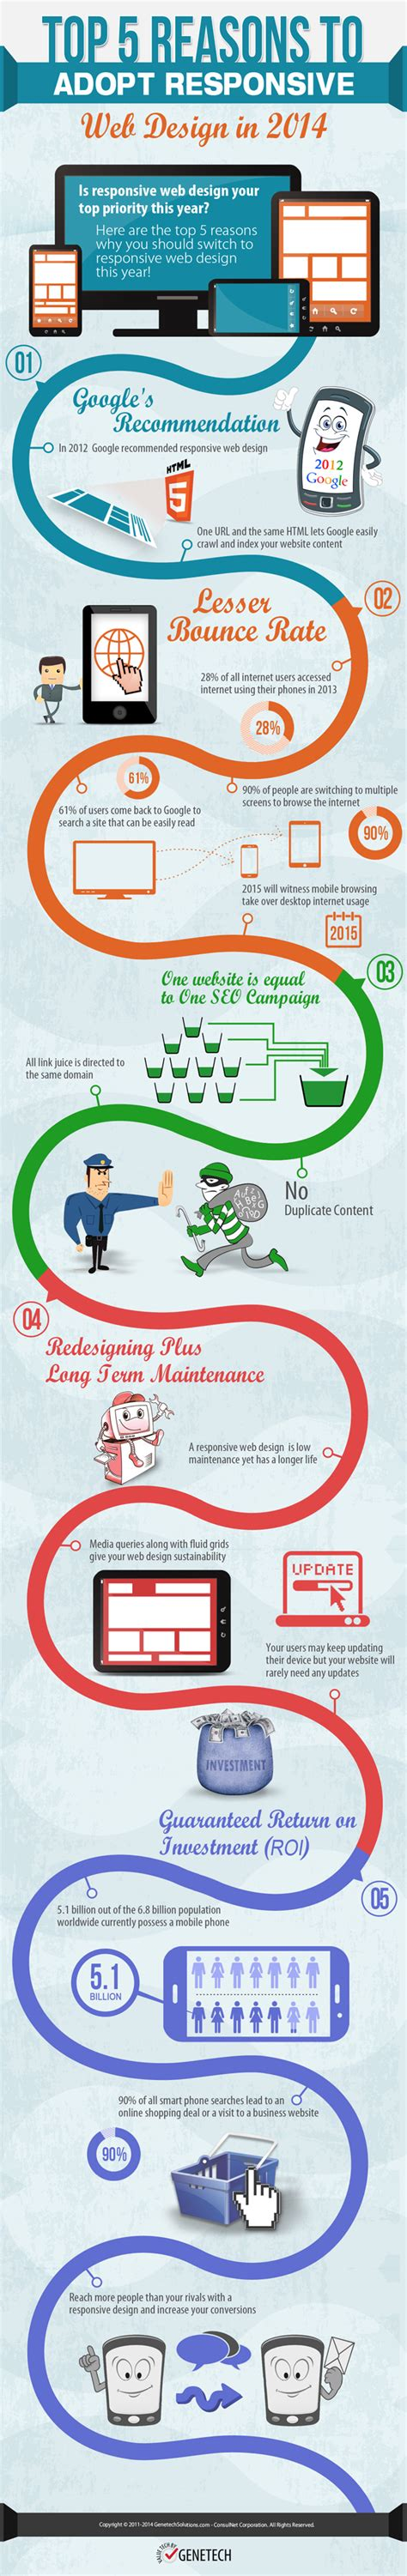 top 5 reasons to adopt responsive web design in 2014 infographic 5 reasons to switch your website to